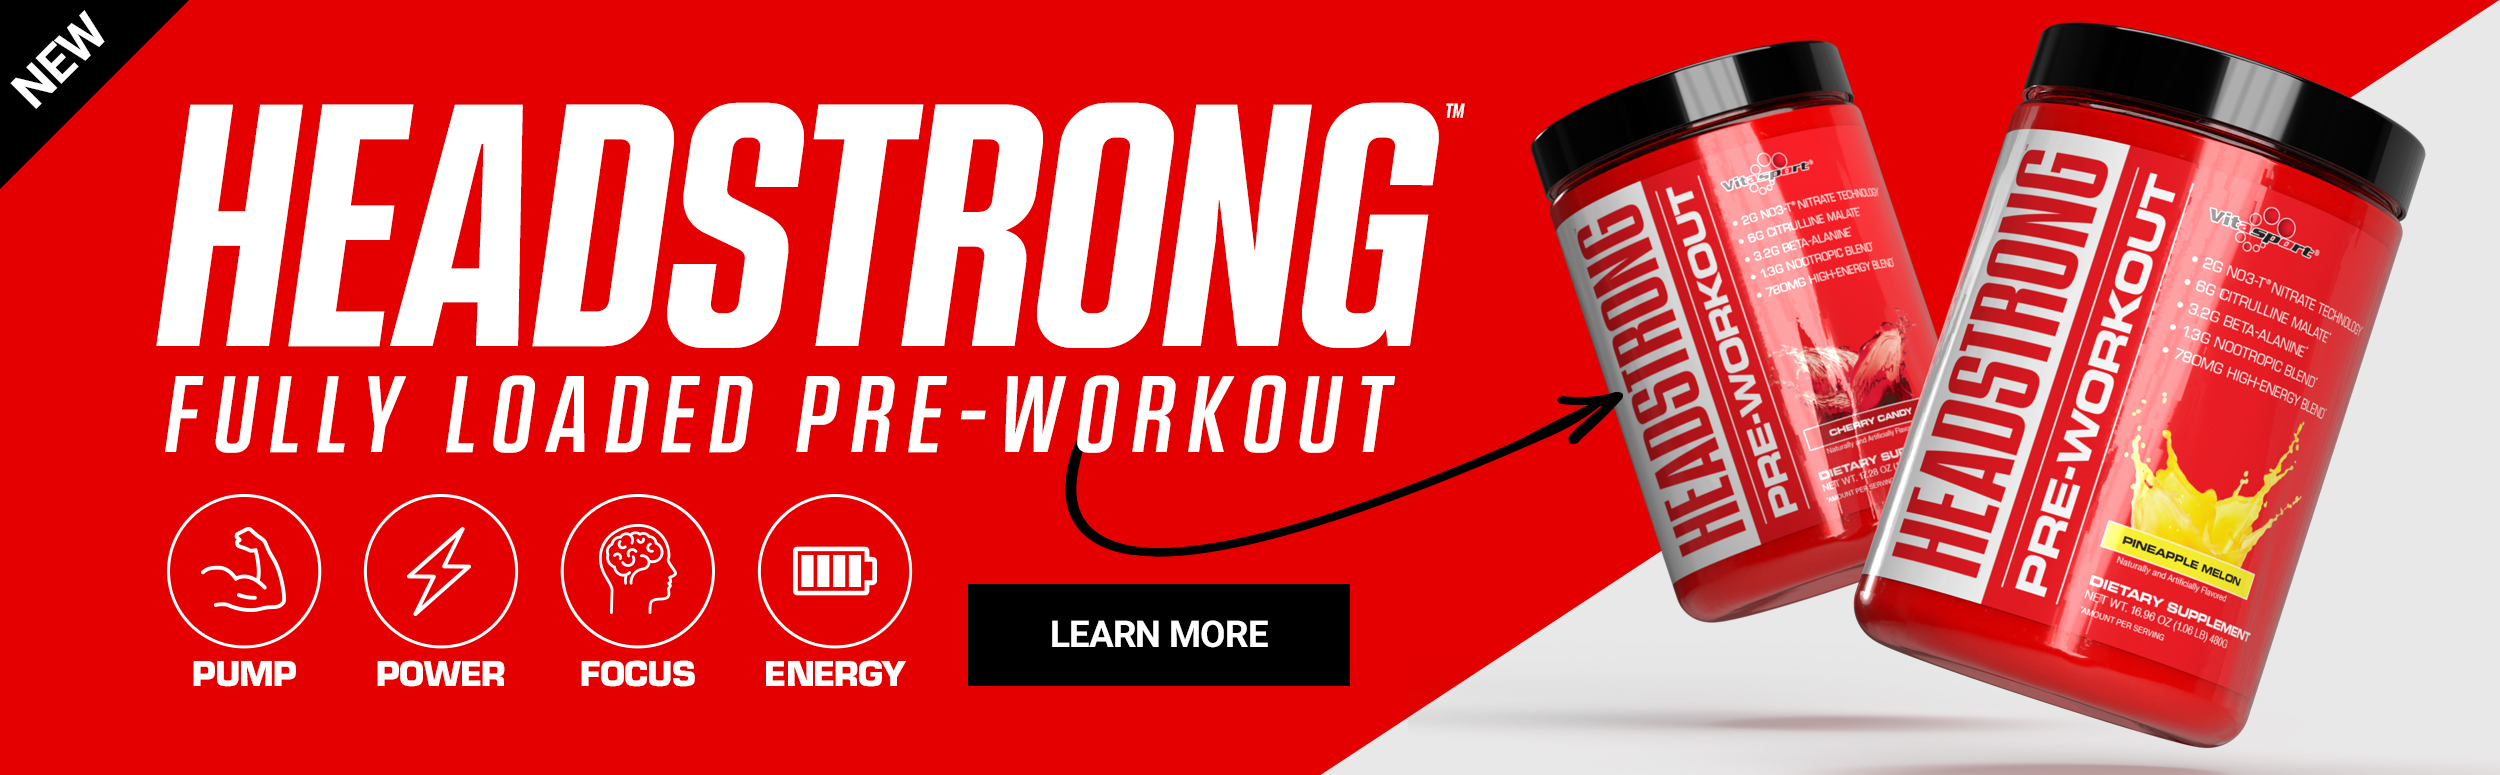 Vitasport Headstrong - Fully Loaded Pre-workout - Click to learn more